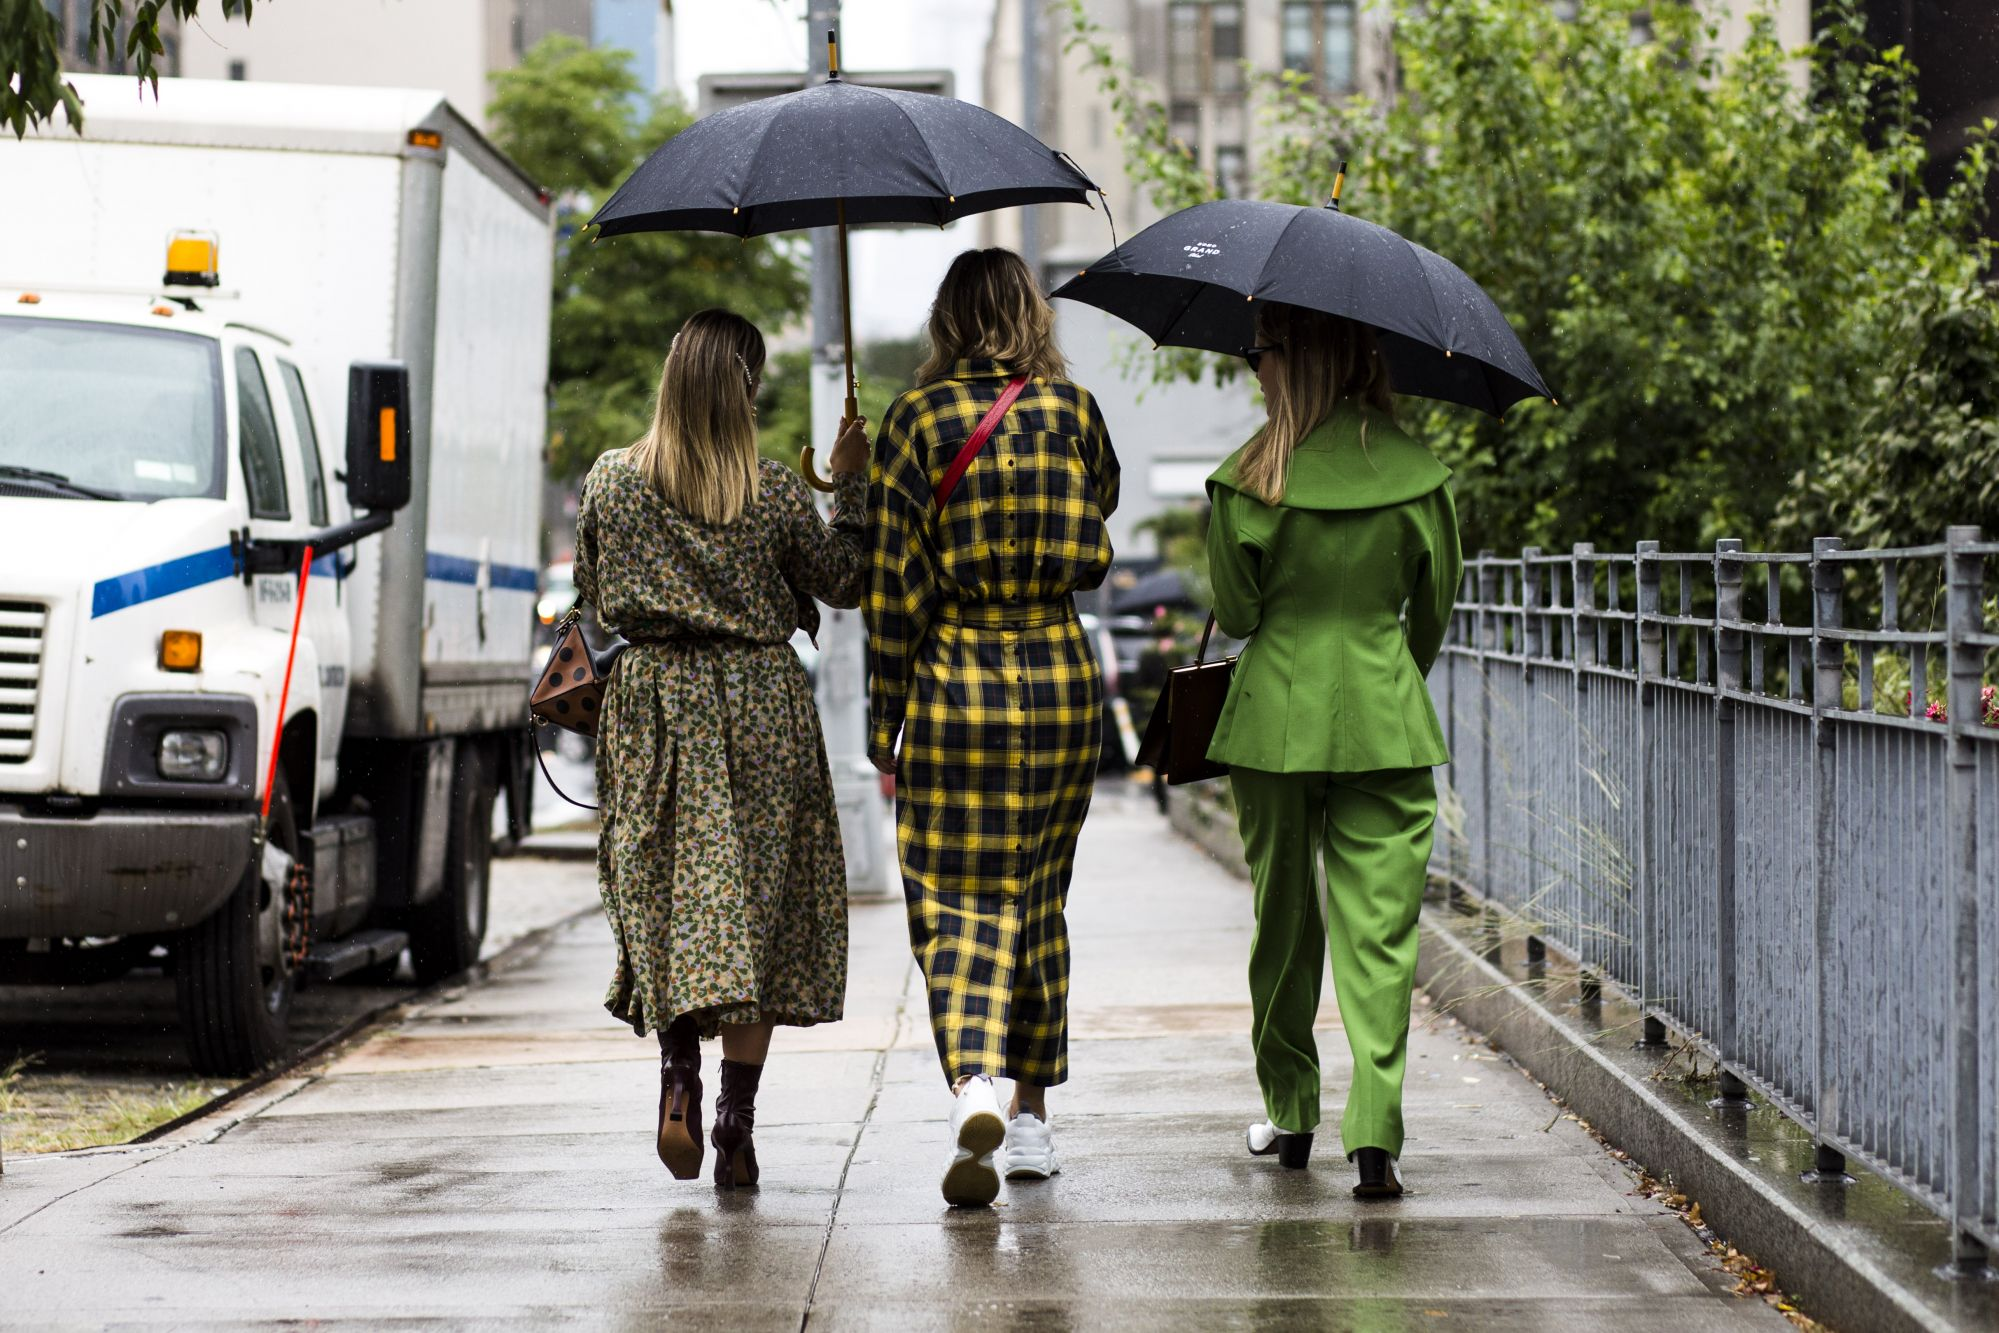 10 Designer Rainy Day Essentials To Stay Chic And Dry